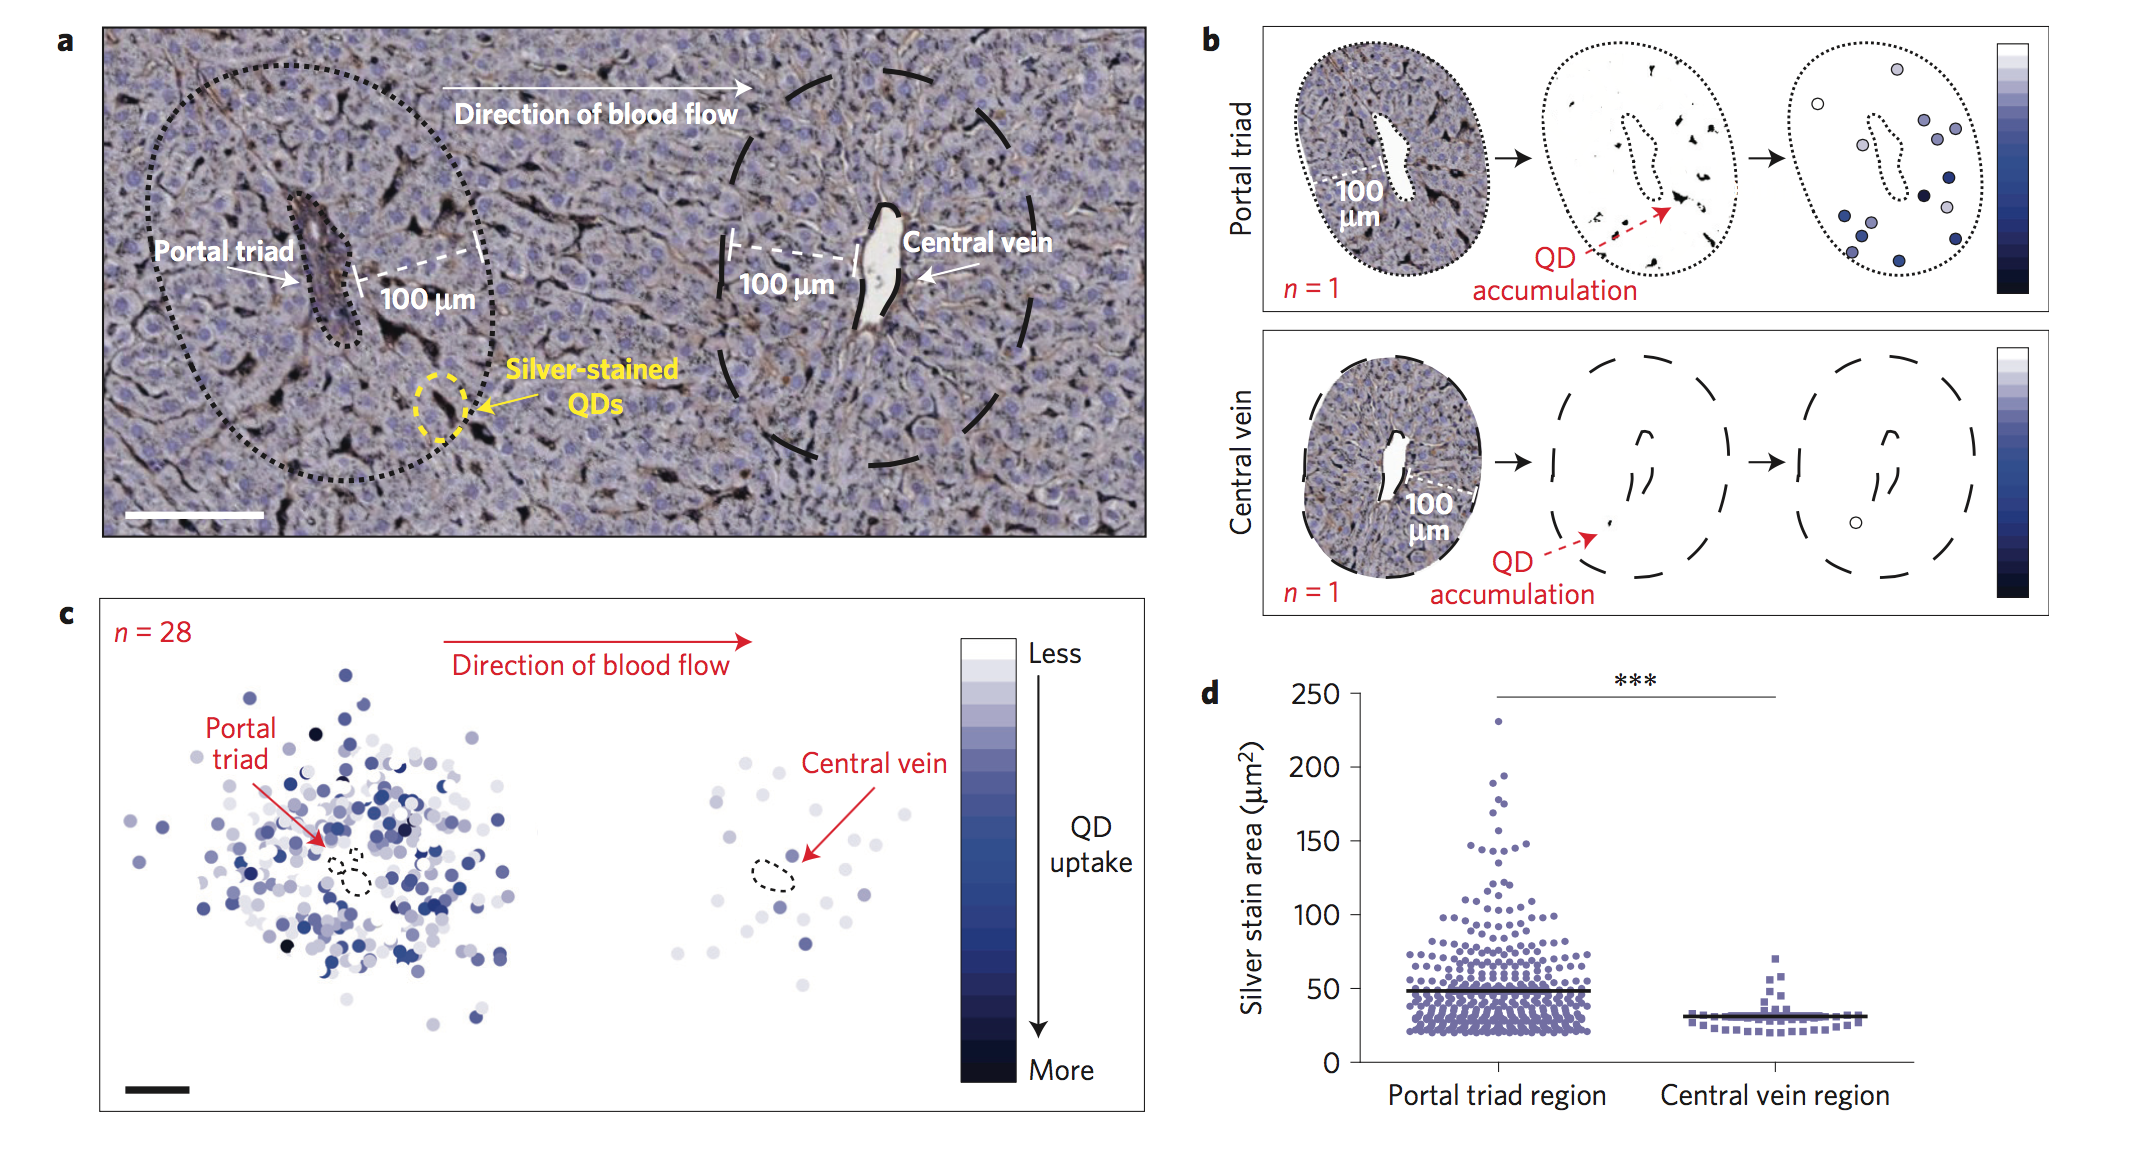 Nanoparticle sequestration in liver tissue